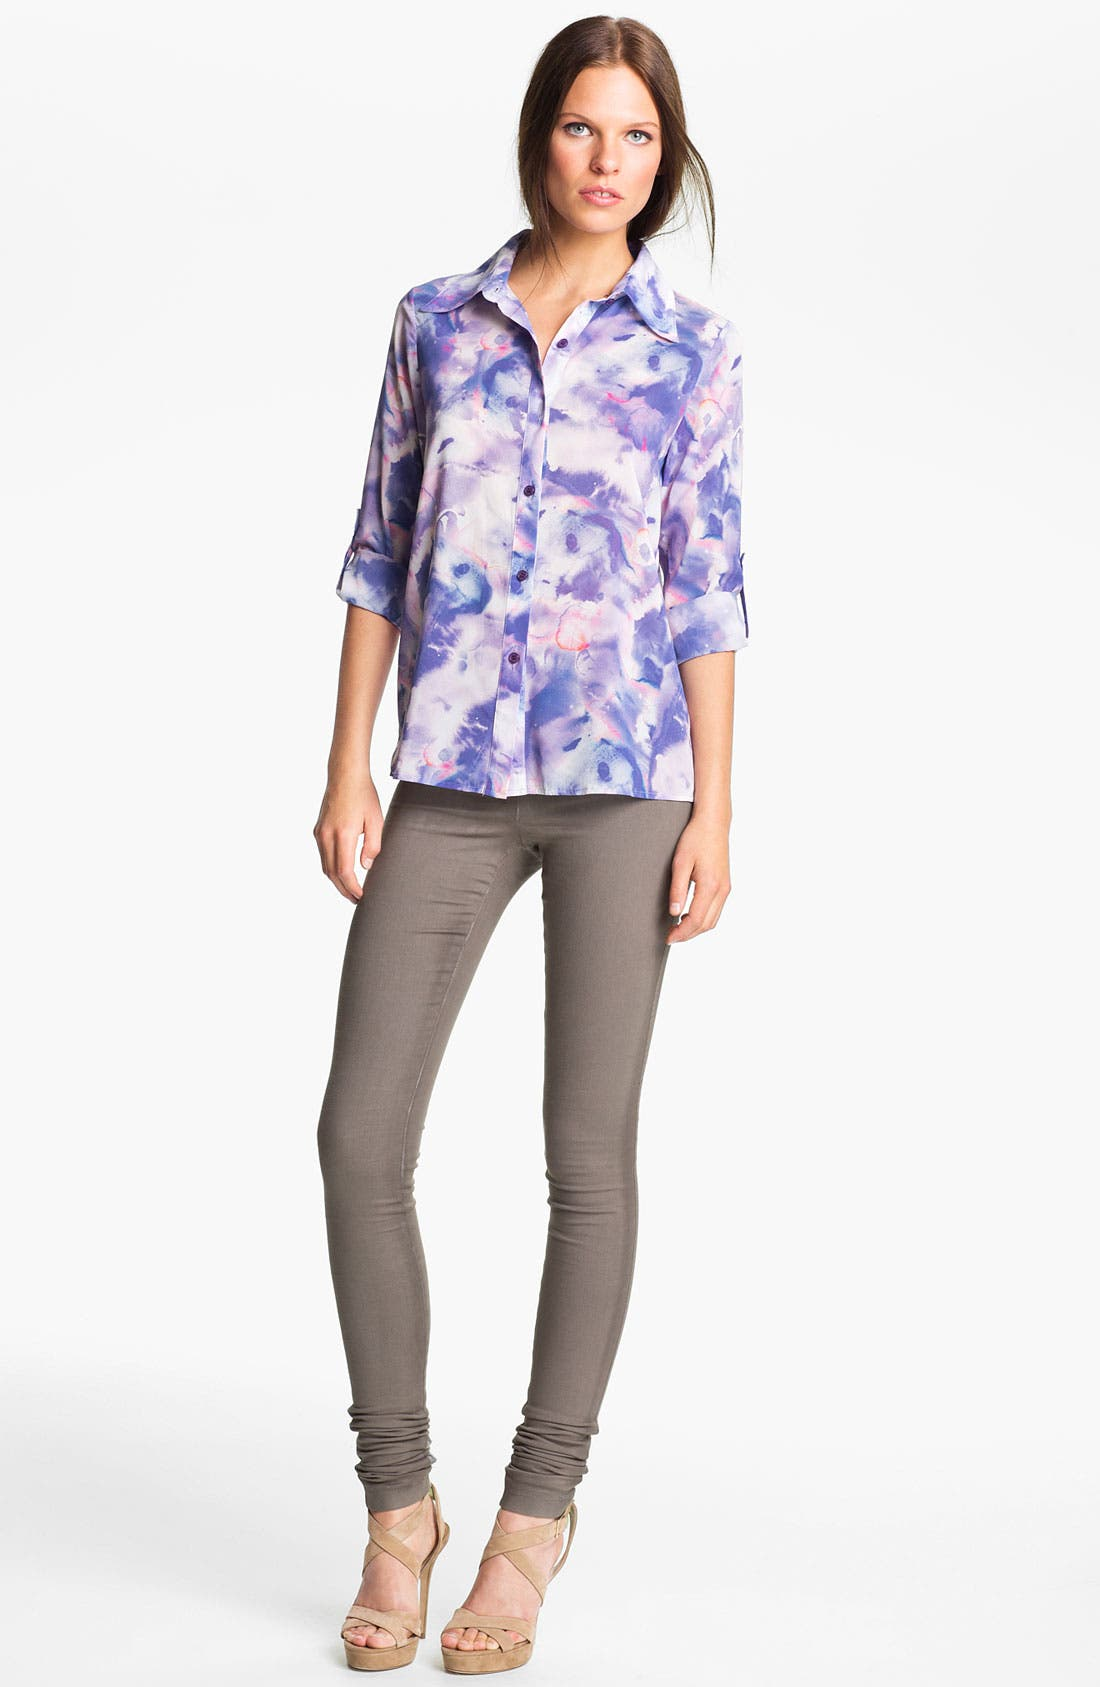 Main Image - Alice + Olivia 'Juliette' Tie Dye Stretch Silk Shirt